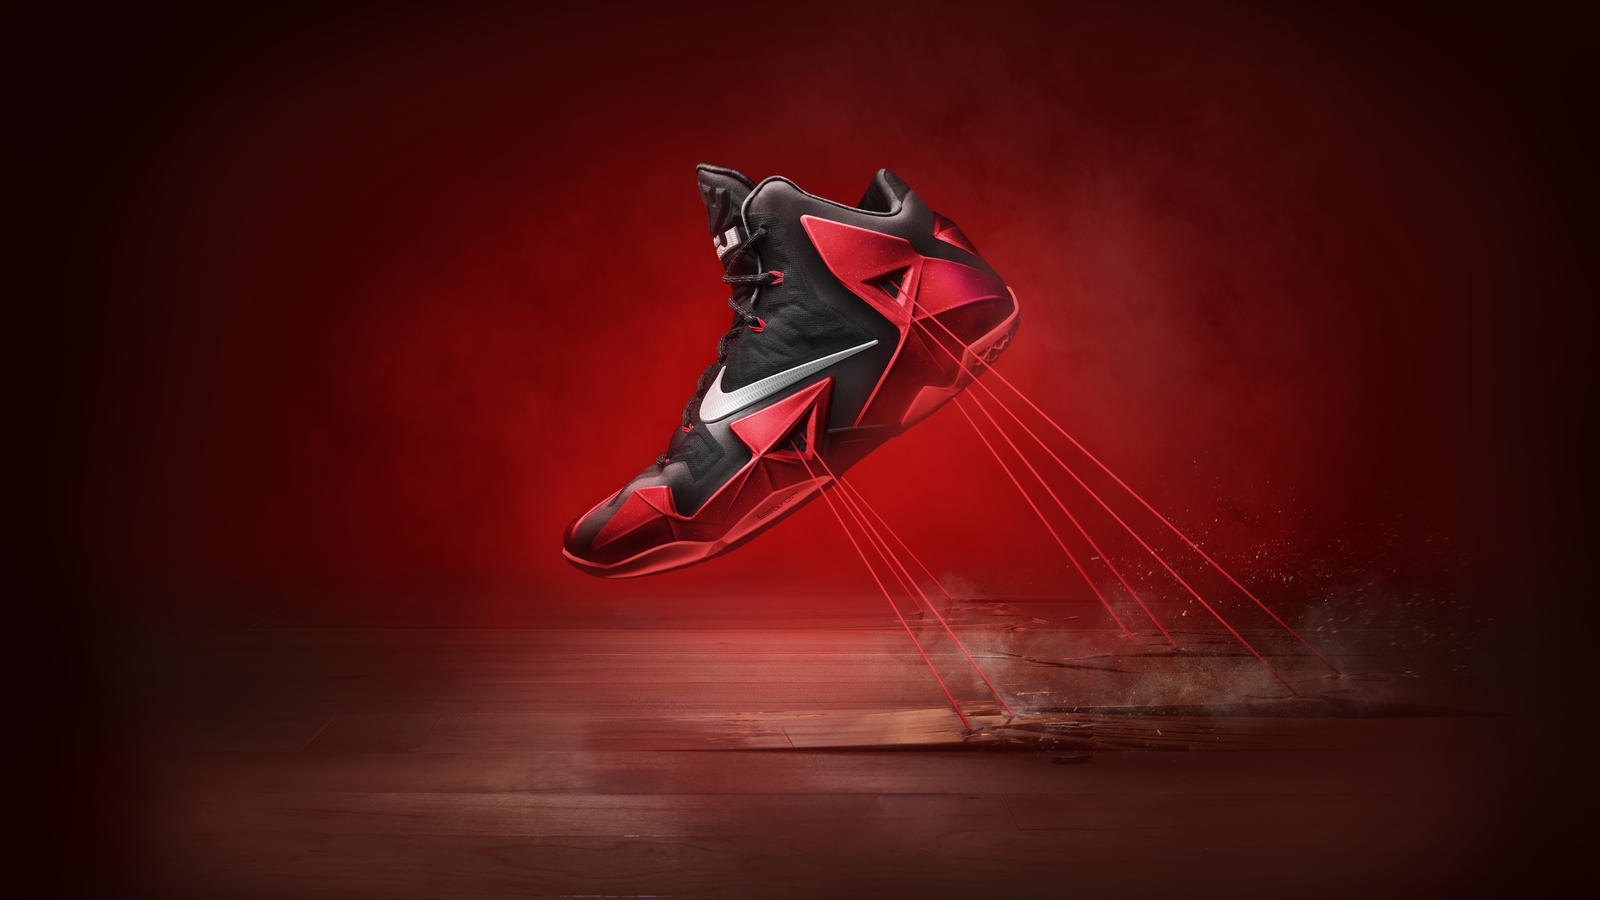 Athletic Shoes Inventive Lebron 11s Street Price Men's Shoes